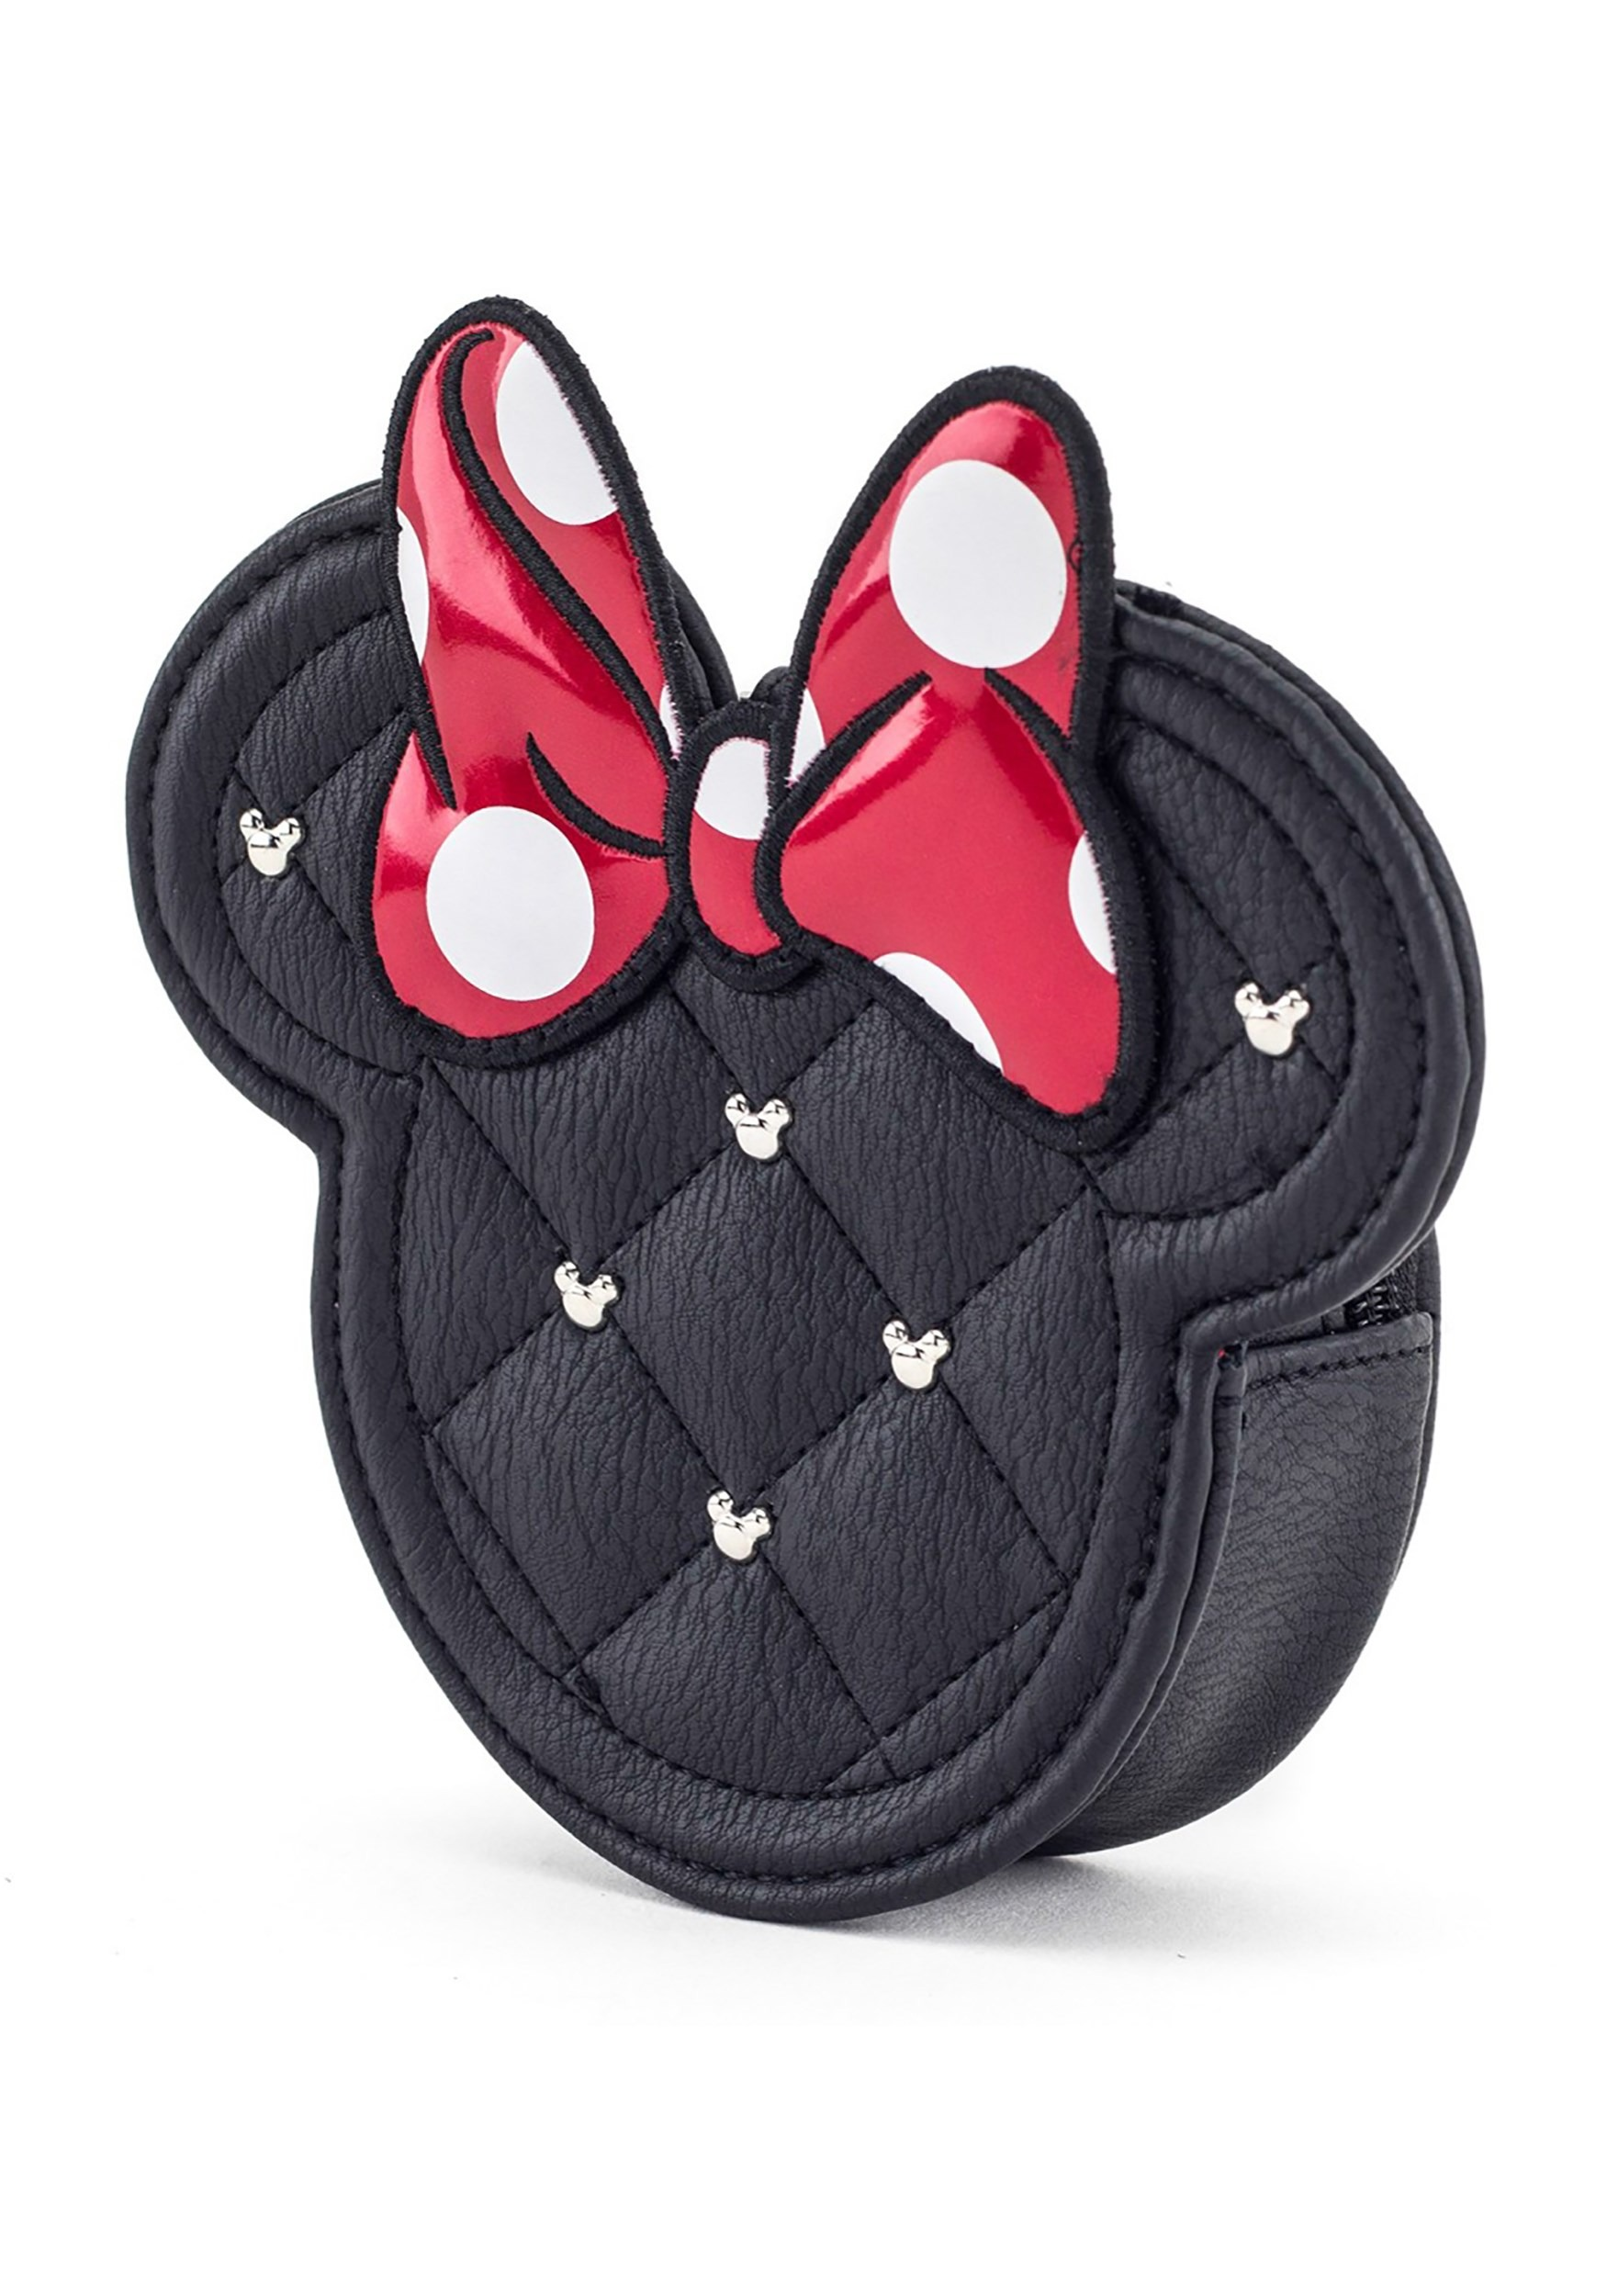 c4c23730bc6d Disney Minnie Mouse Loungefly Faux Leather Coin Purse